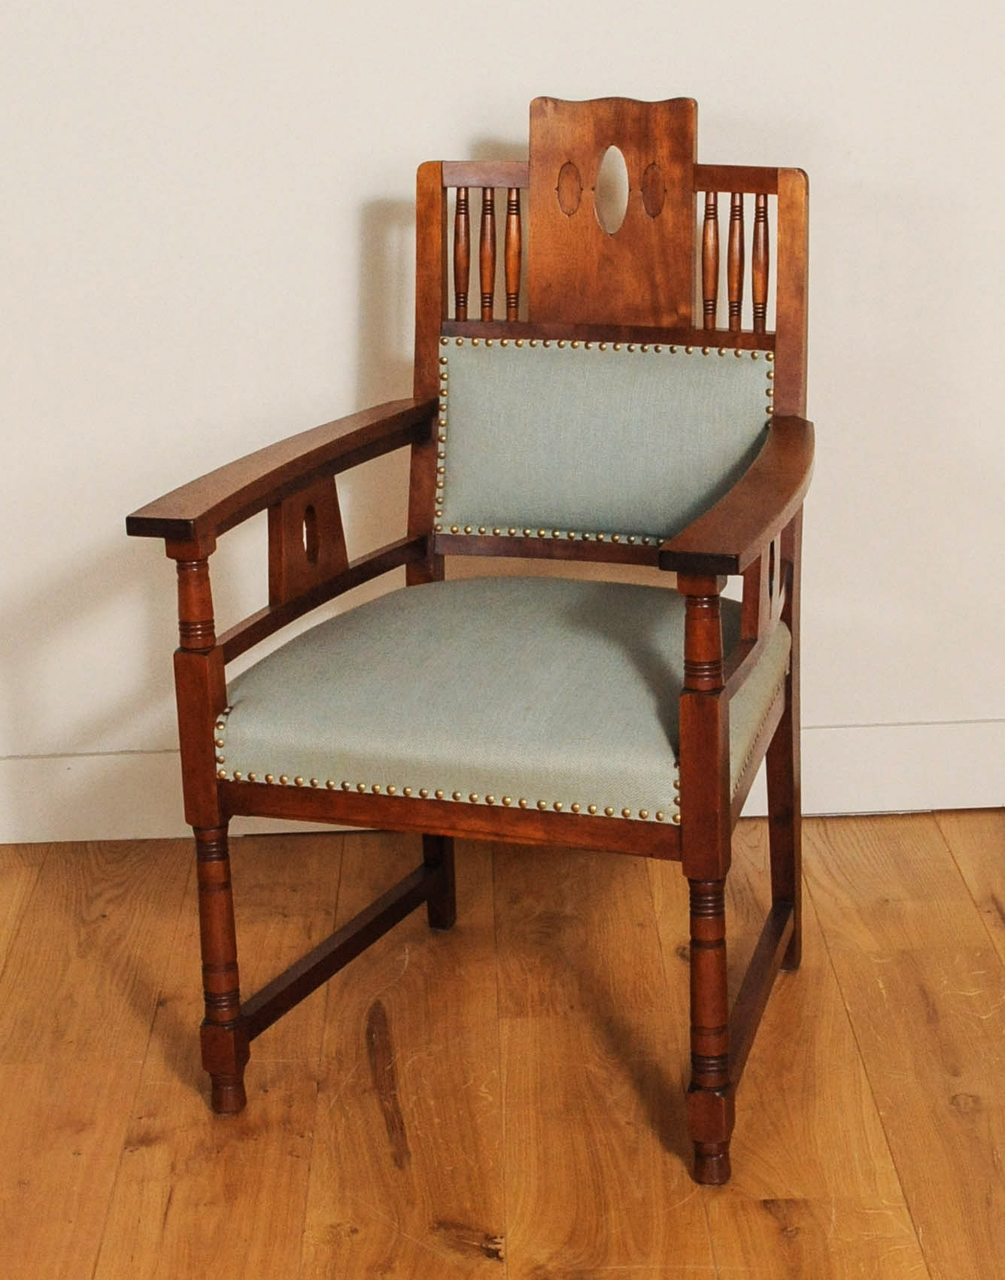 Art Deco Kuipstoelen.A Dutch Art Deco Mahogany Dining Room Set Of A Table And Four Chairs